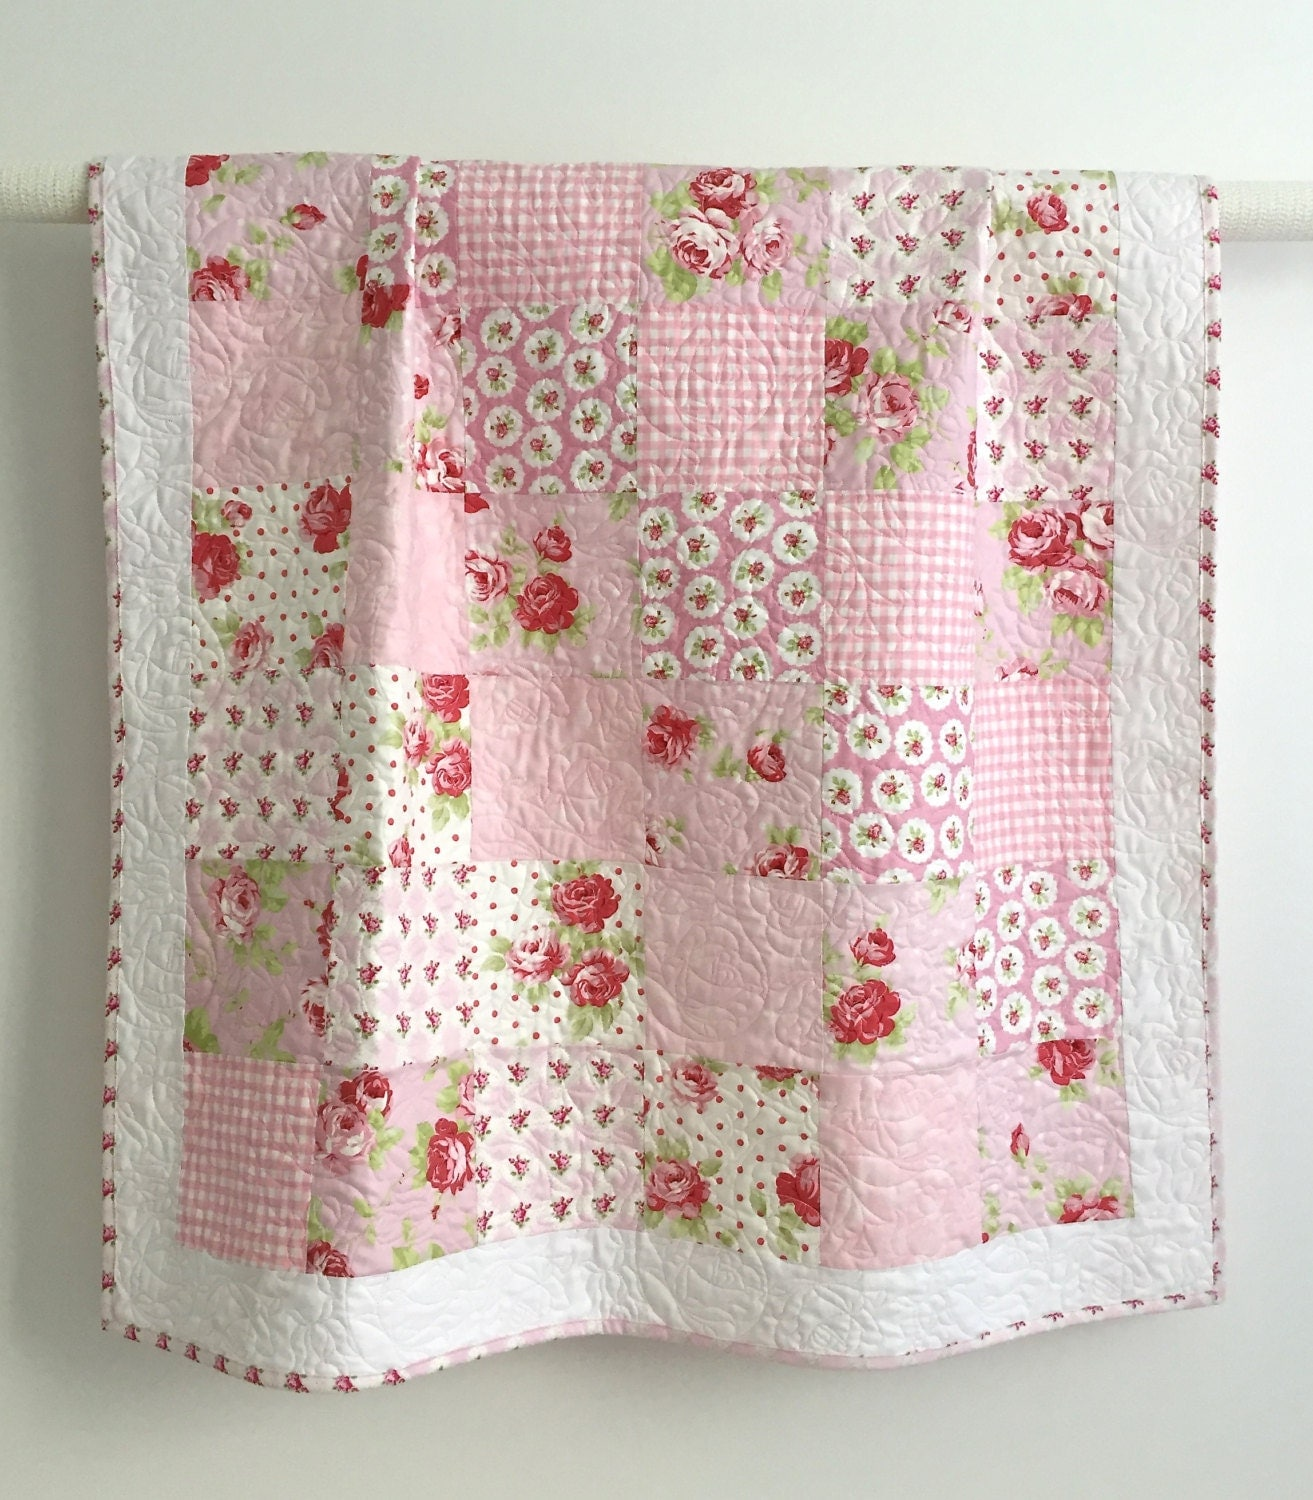 Quilt Ideas For Baby Girl : Adorable Baby Girl Quilt with Tiny Pink Roses